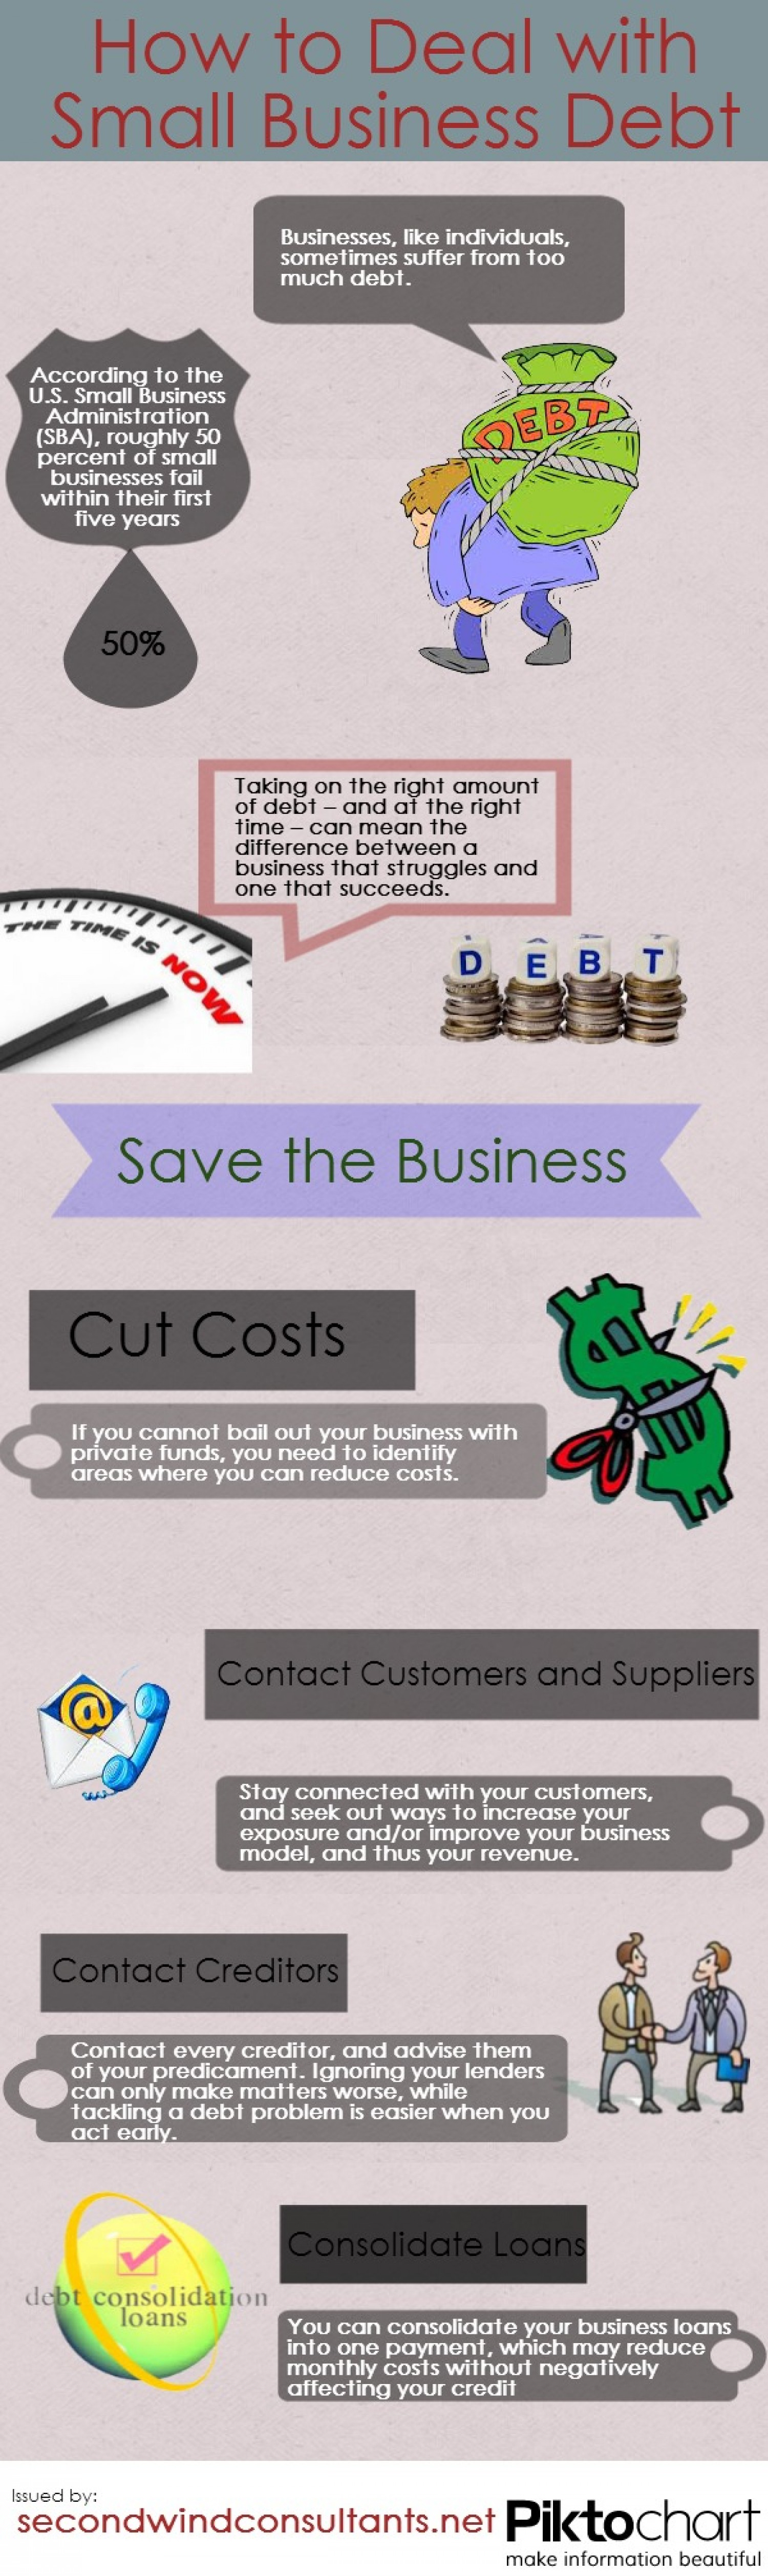 how-to-deal-with-small-business-debt_5289c88707b2e_w1500